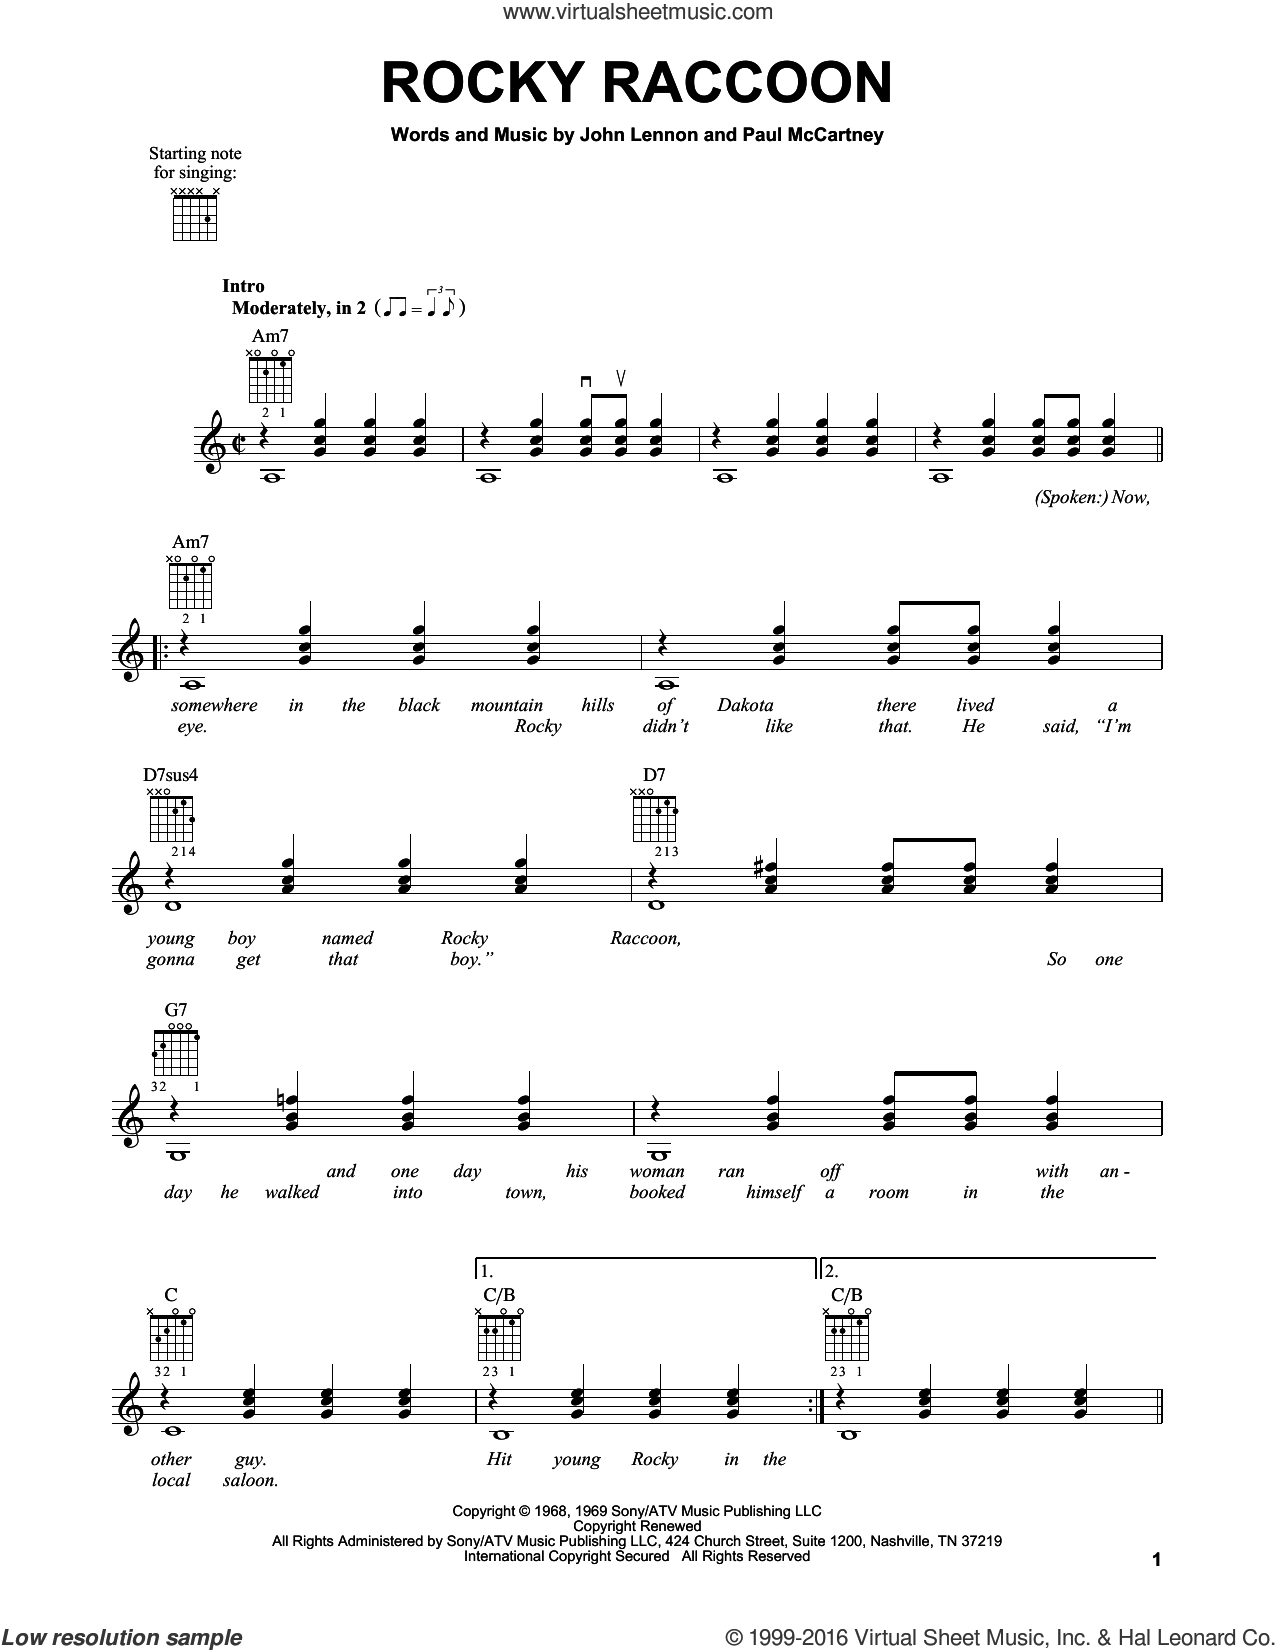 Blackbird the beatles guitar chords gallery guitar chords examples beatles rocky raccoon sheet music for guitar solo chords rocky raccoon sheet music for guitar solo hexwebz Images